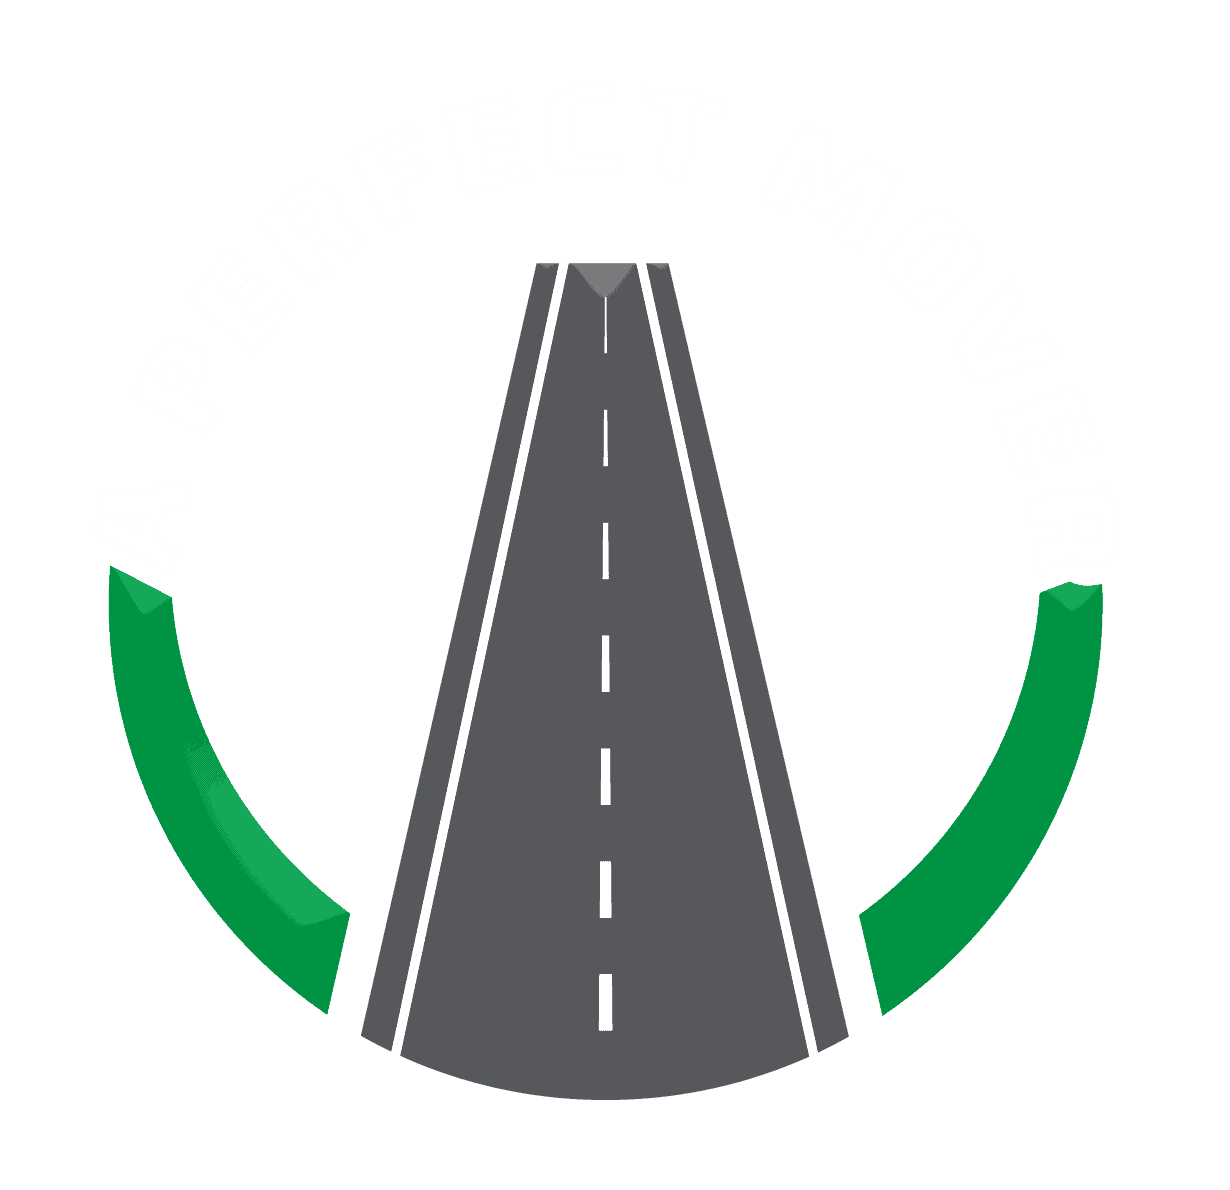 This is the transparent logo for A Perfect Mover